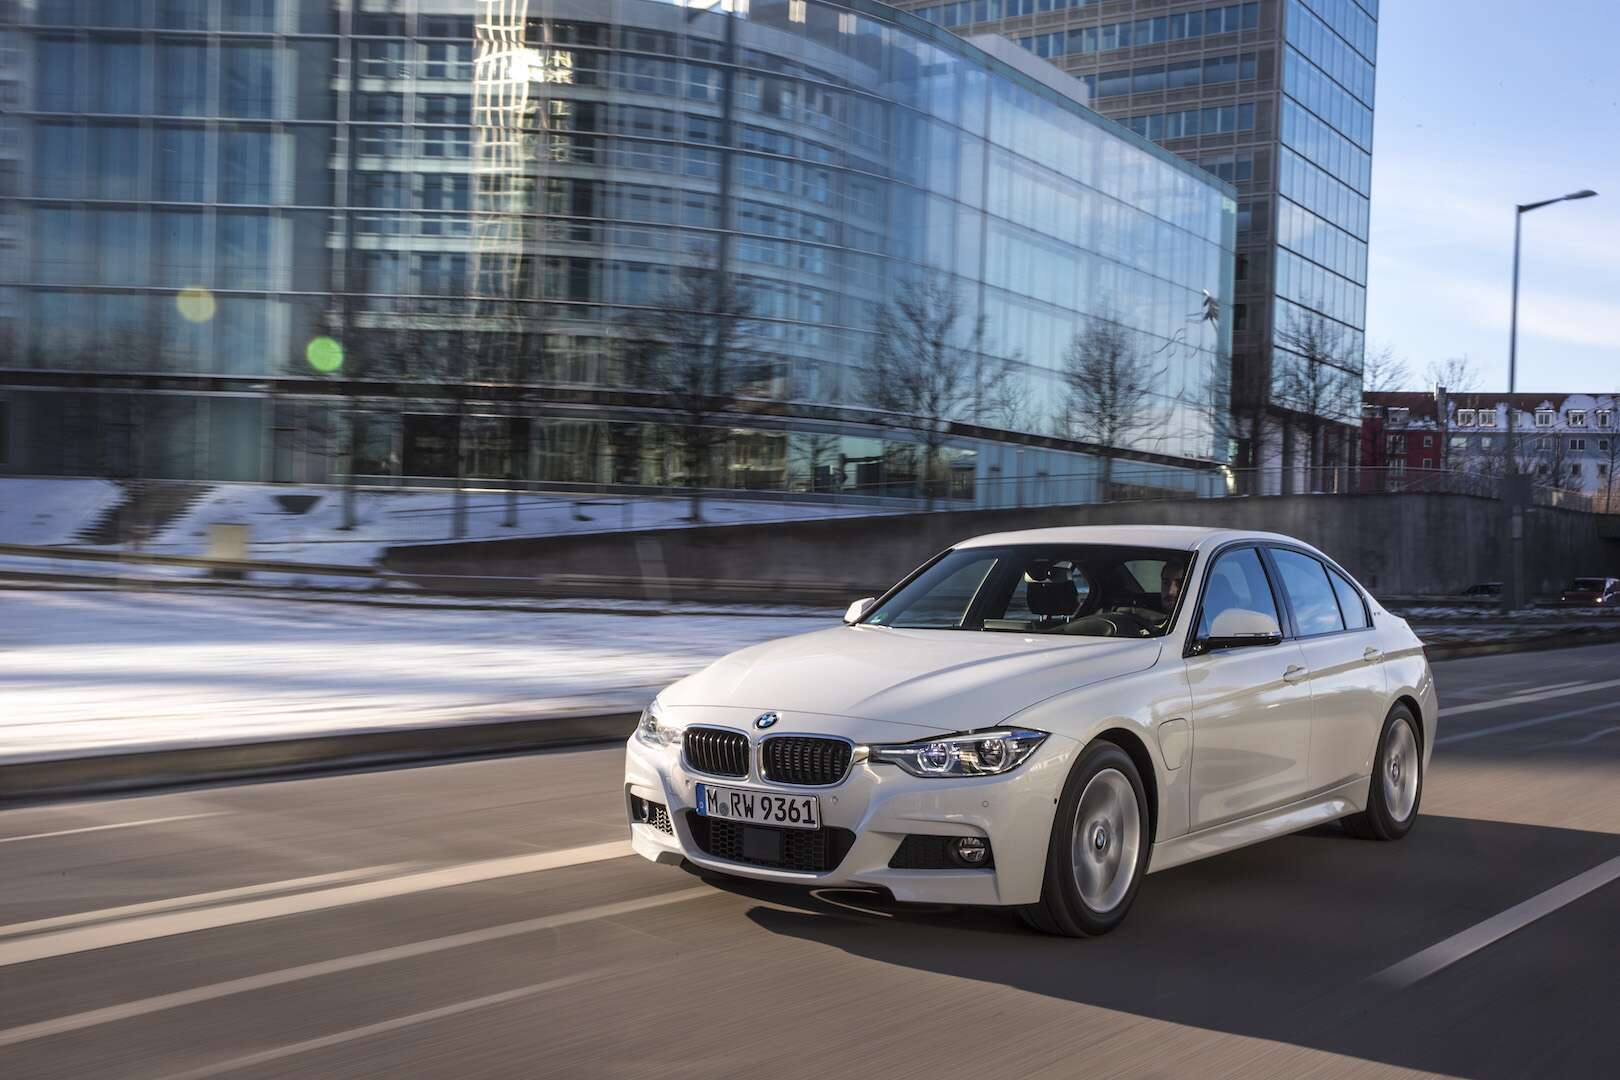 2018 Bmw 330e I Performance Test Drive Review A Plug In Hybrid 3 Series For Better And Worse